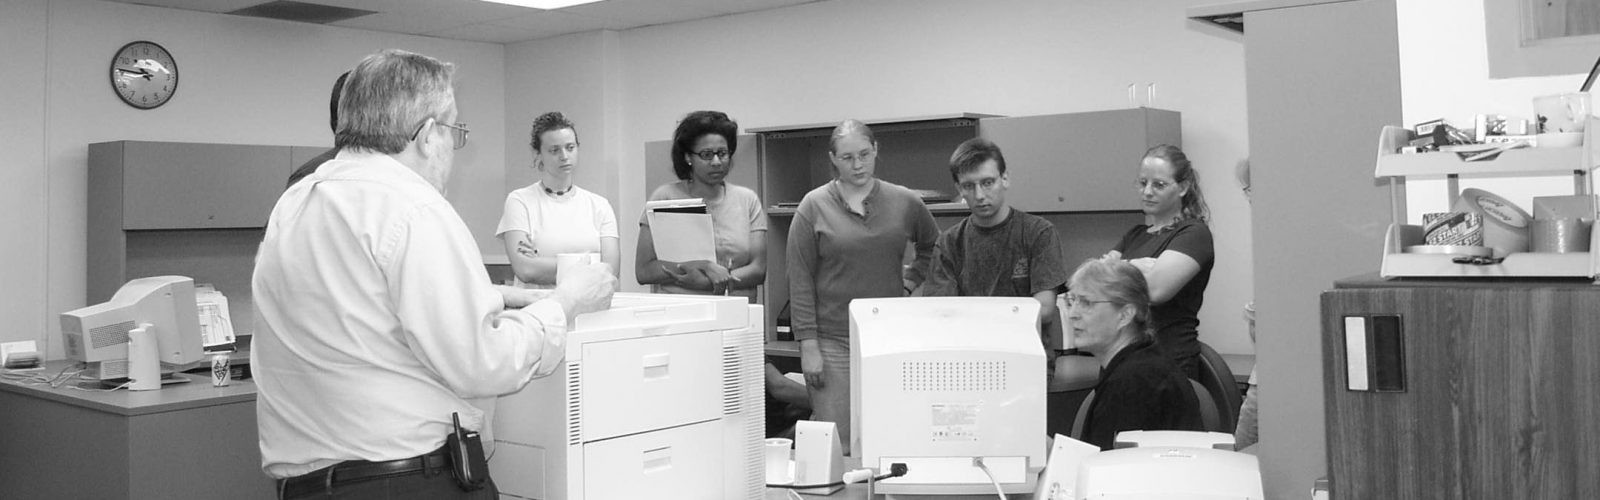 Black and white picture of researches talking in the office from the 60s.